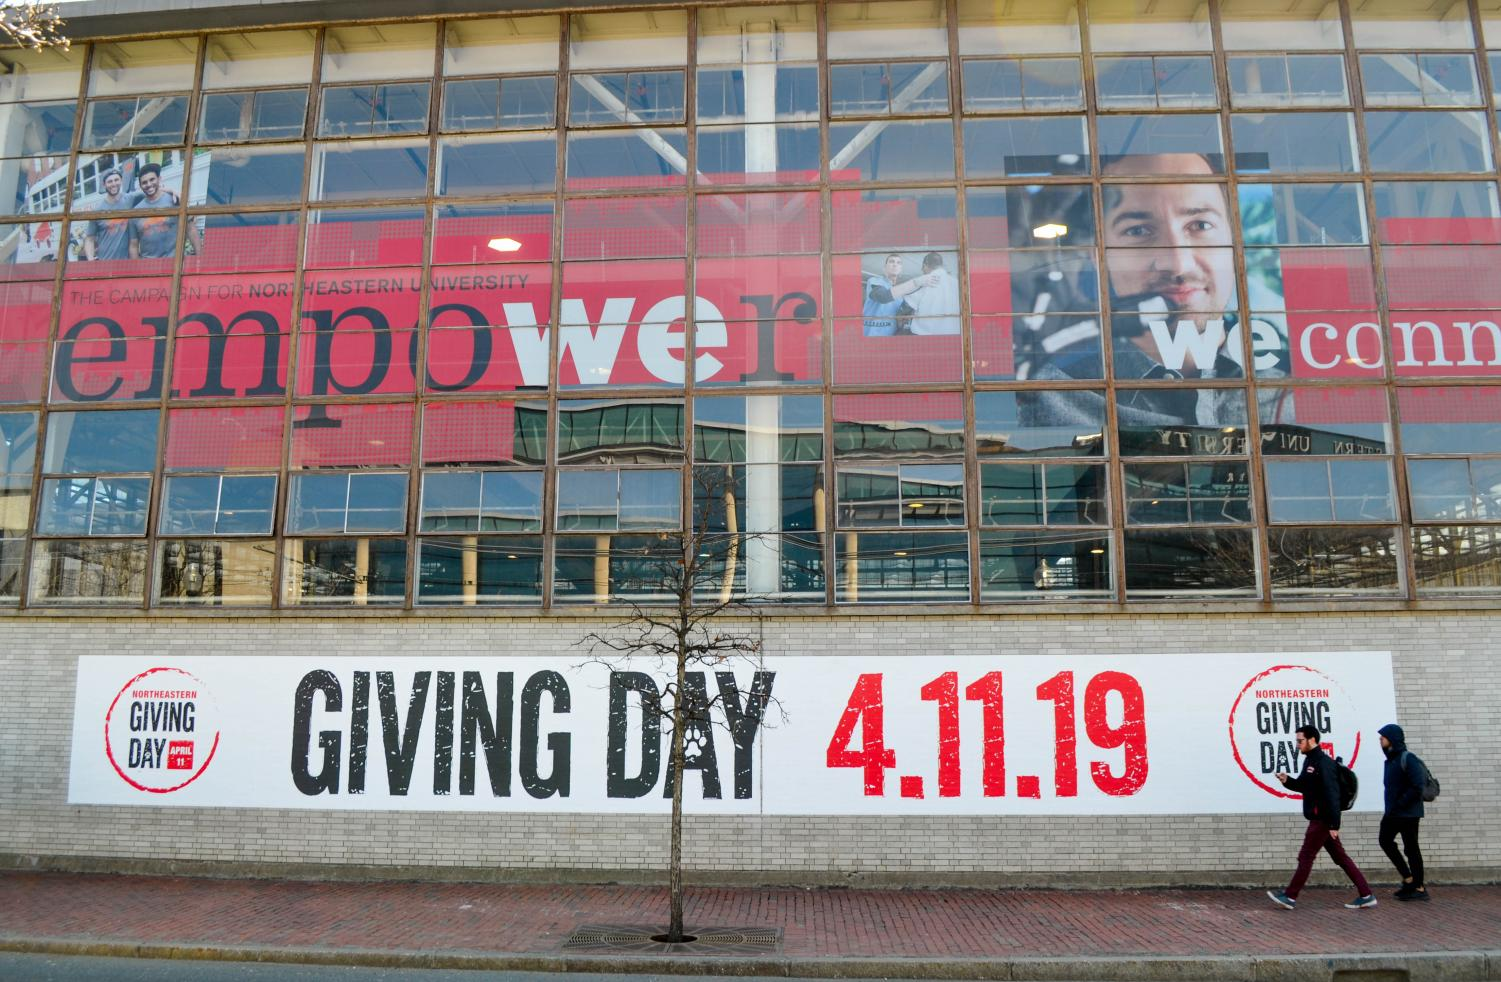 Giving Day is advertised as a day-long philanthropic initiative in which the Northeastern community is asked to